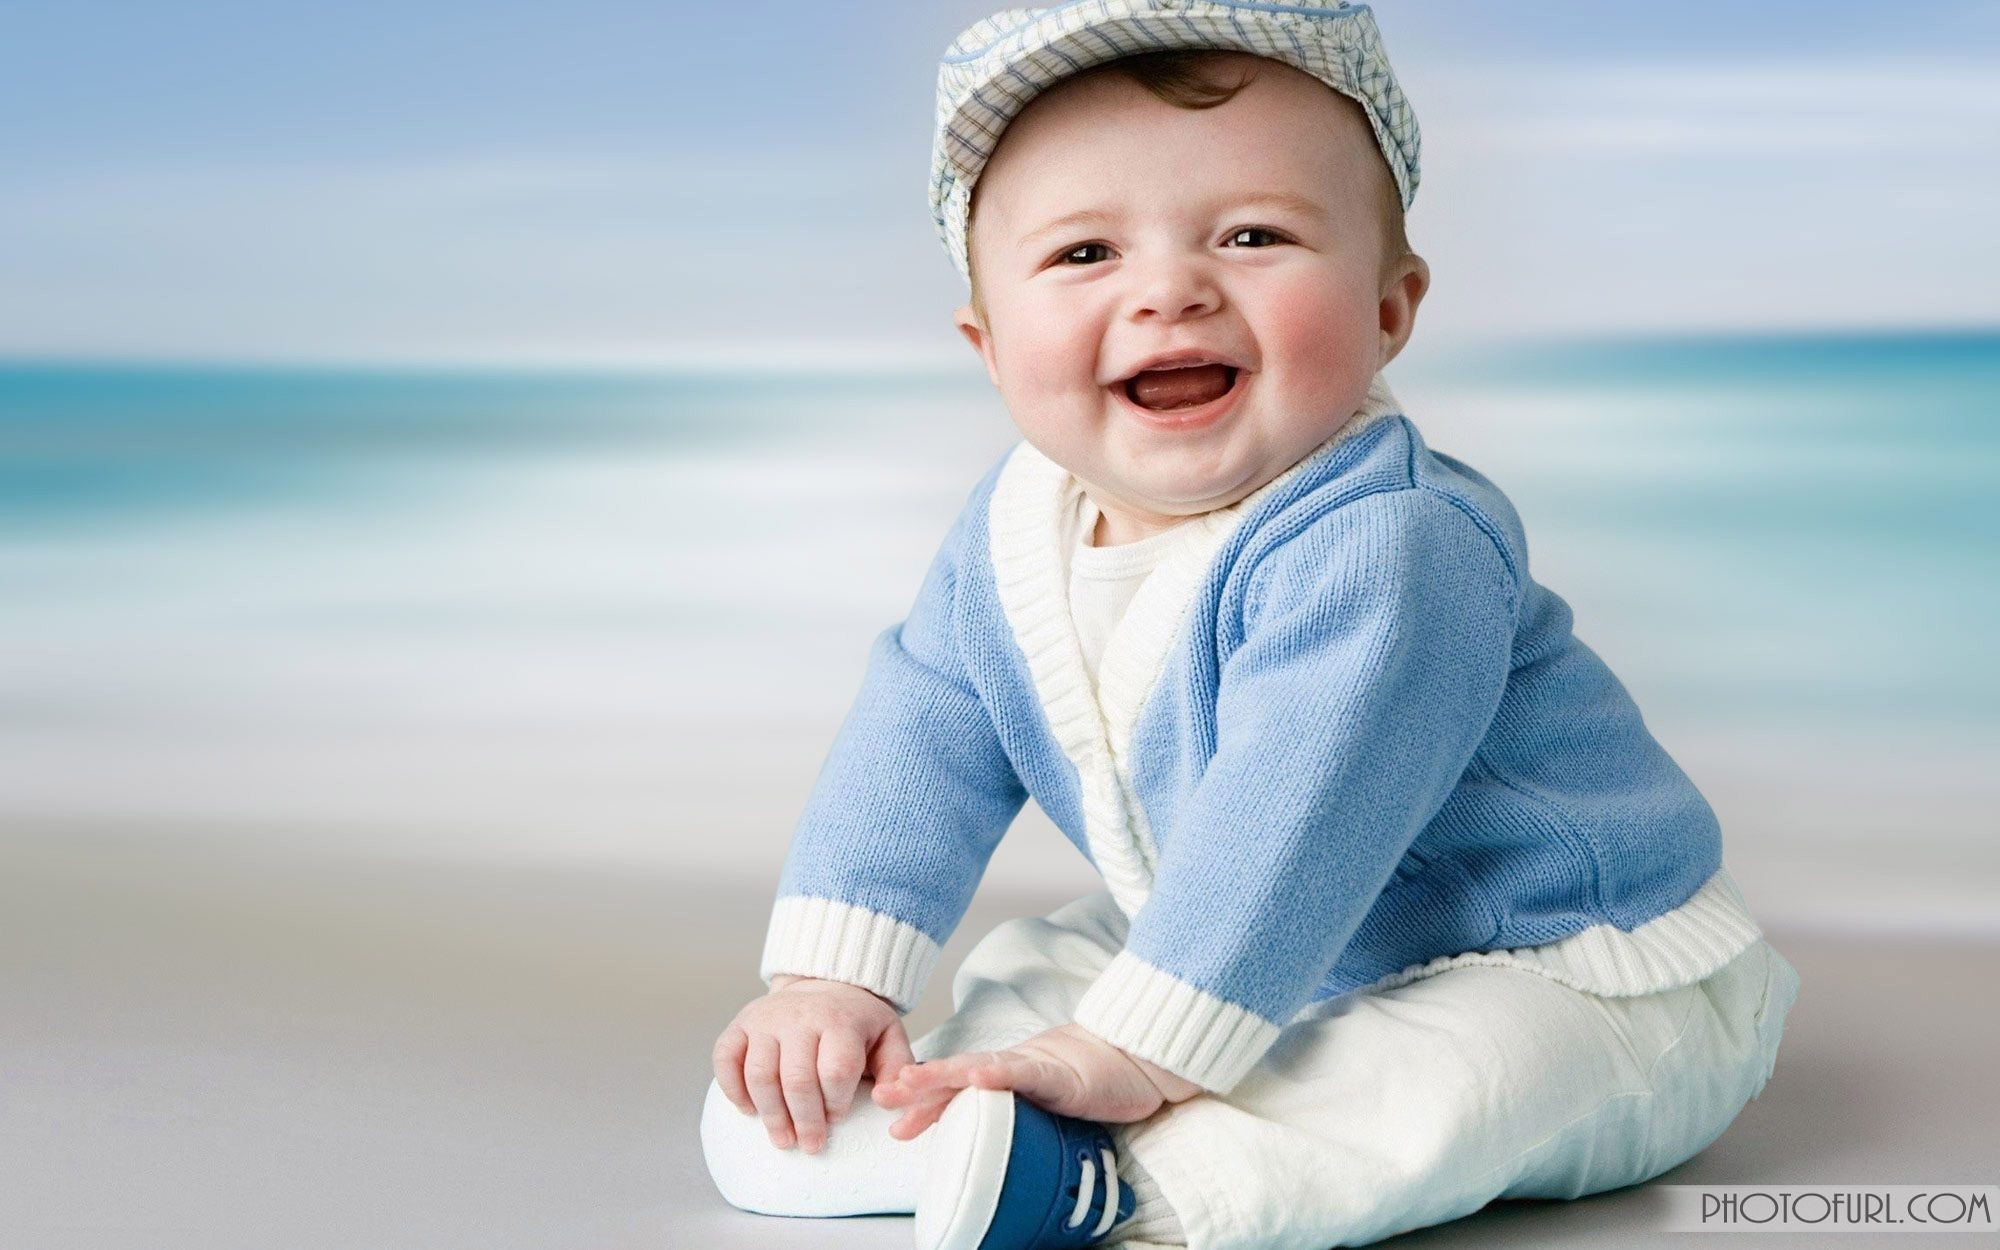 2000x1250 beautiful children wallpaper playing and laughing babies